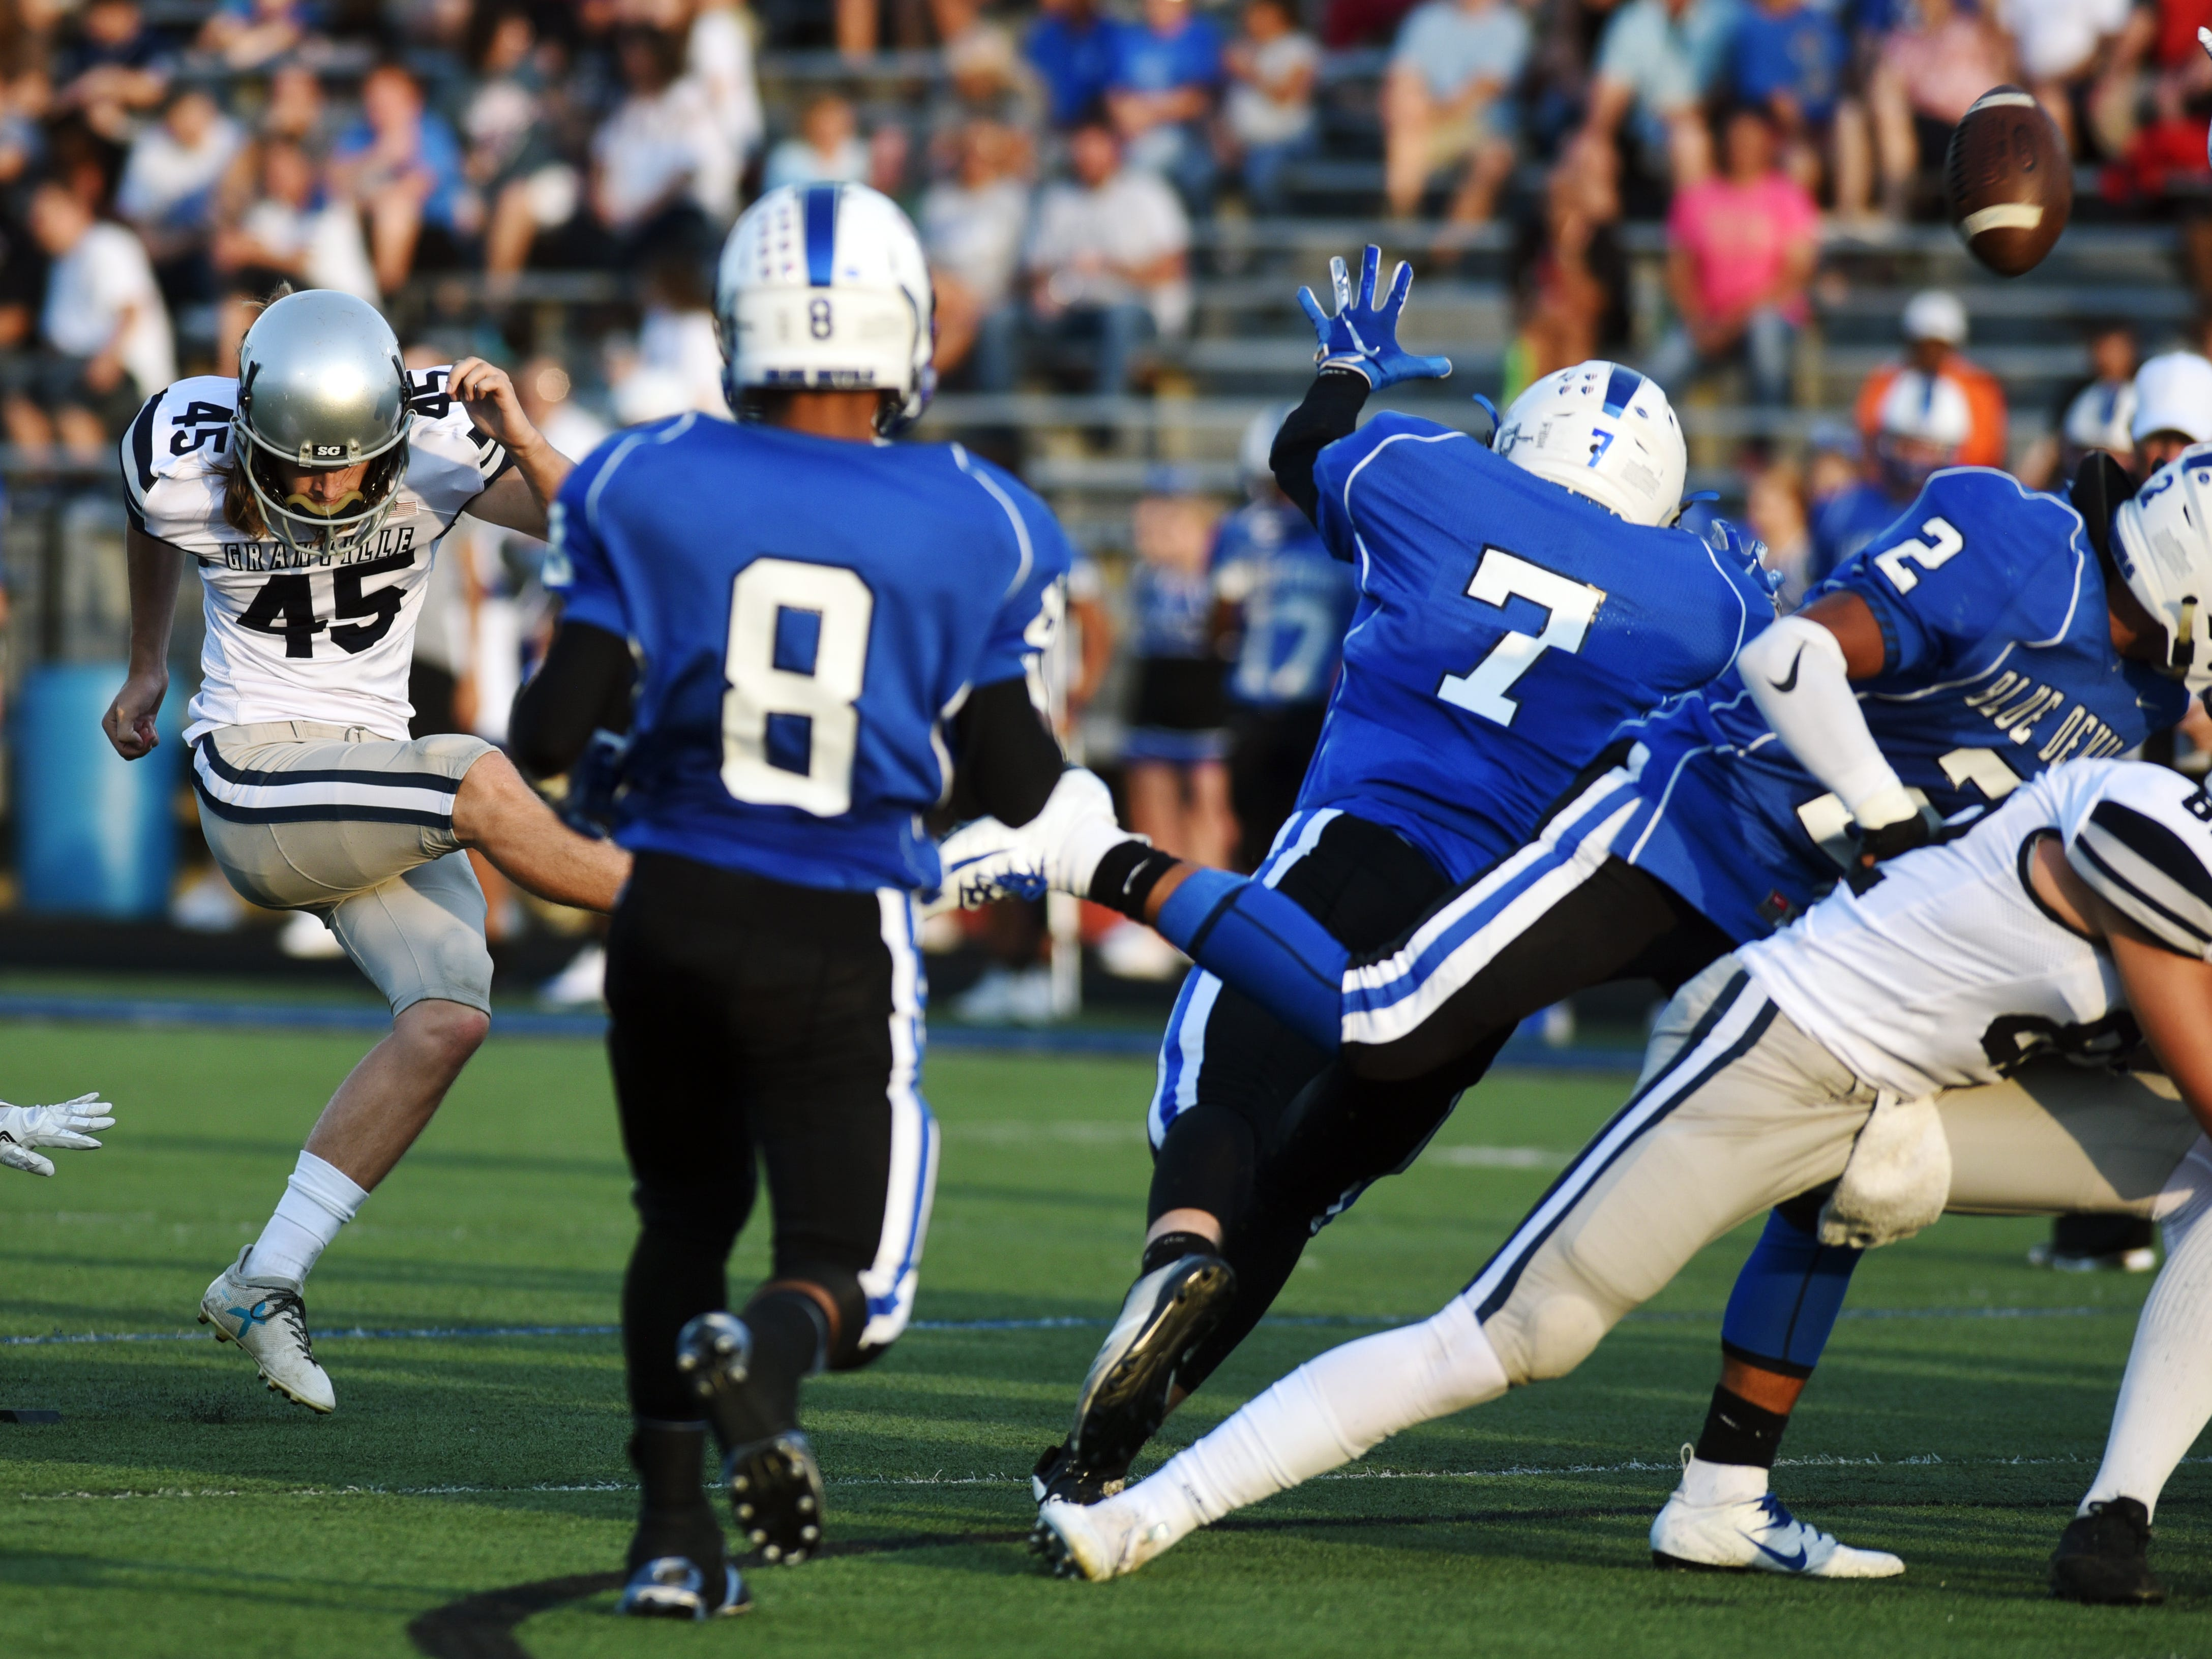 Craig Zies, of Granville, kicks a field goal in the first quarter. The Blue Aces held on for a 17-14 win against Zanesville on Friday night at John D. Sulsberger Memorial Stadium.